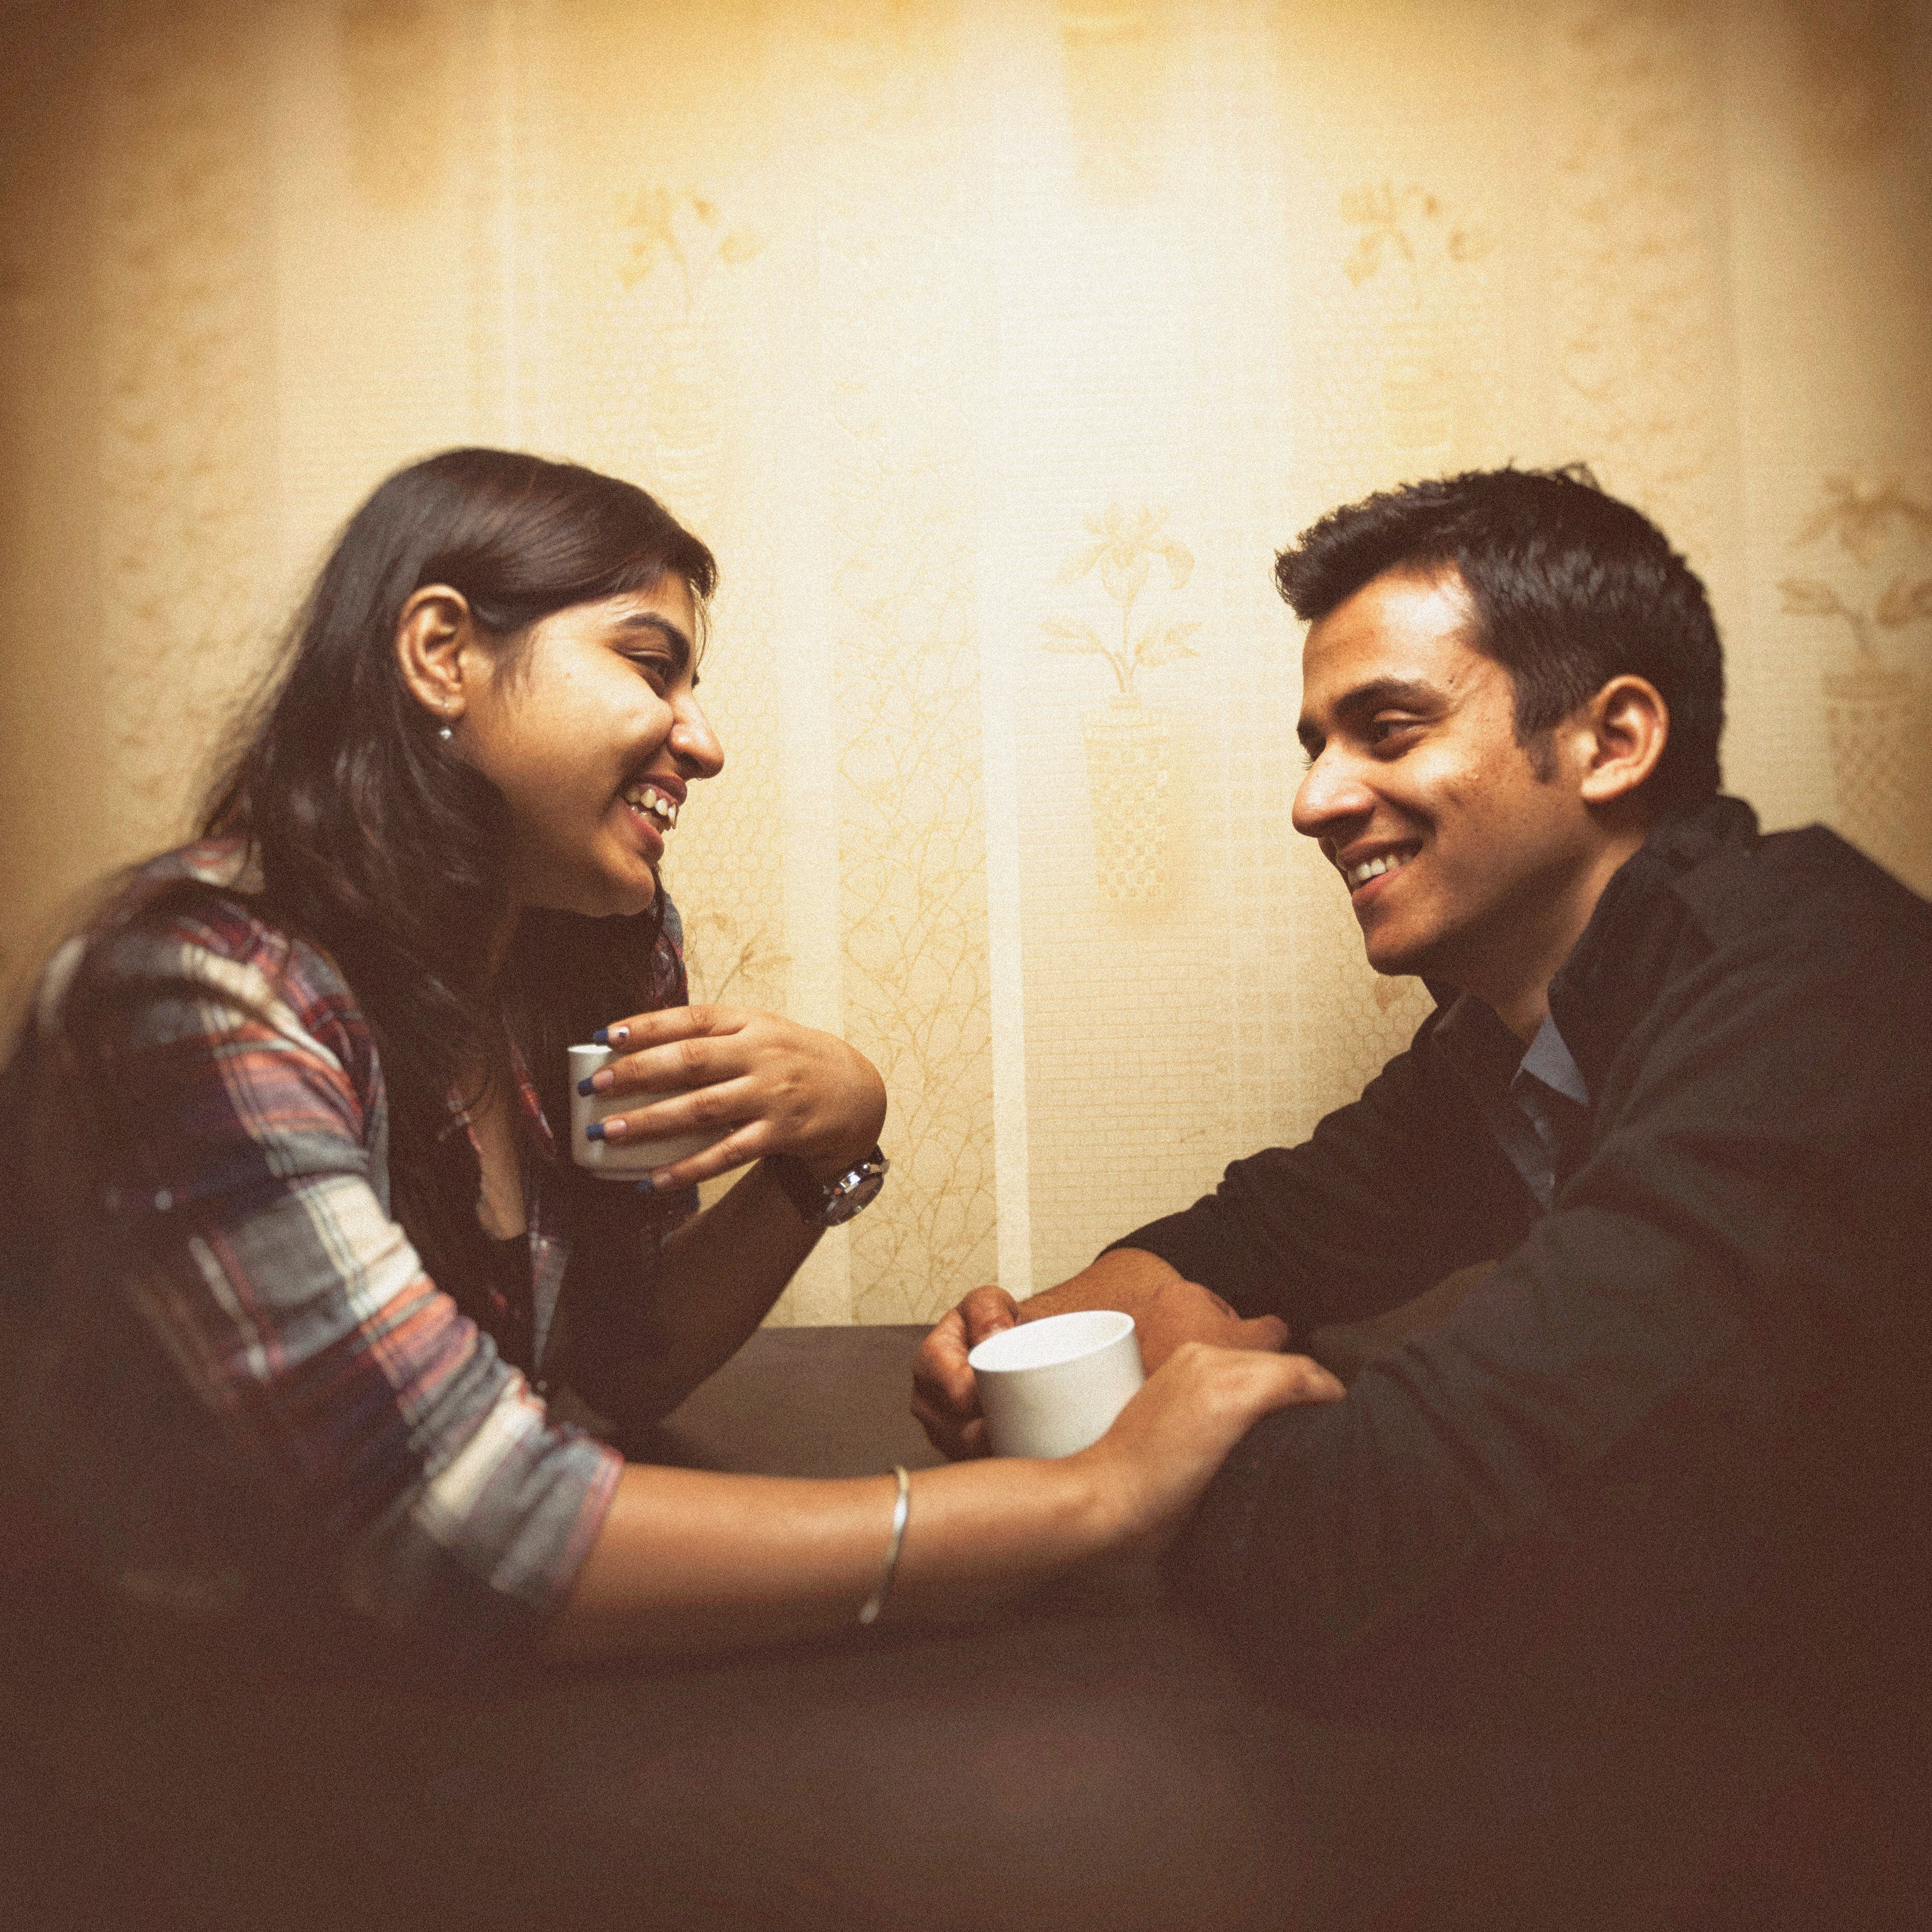 5 first date beauty habits he hates